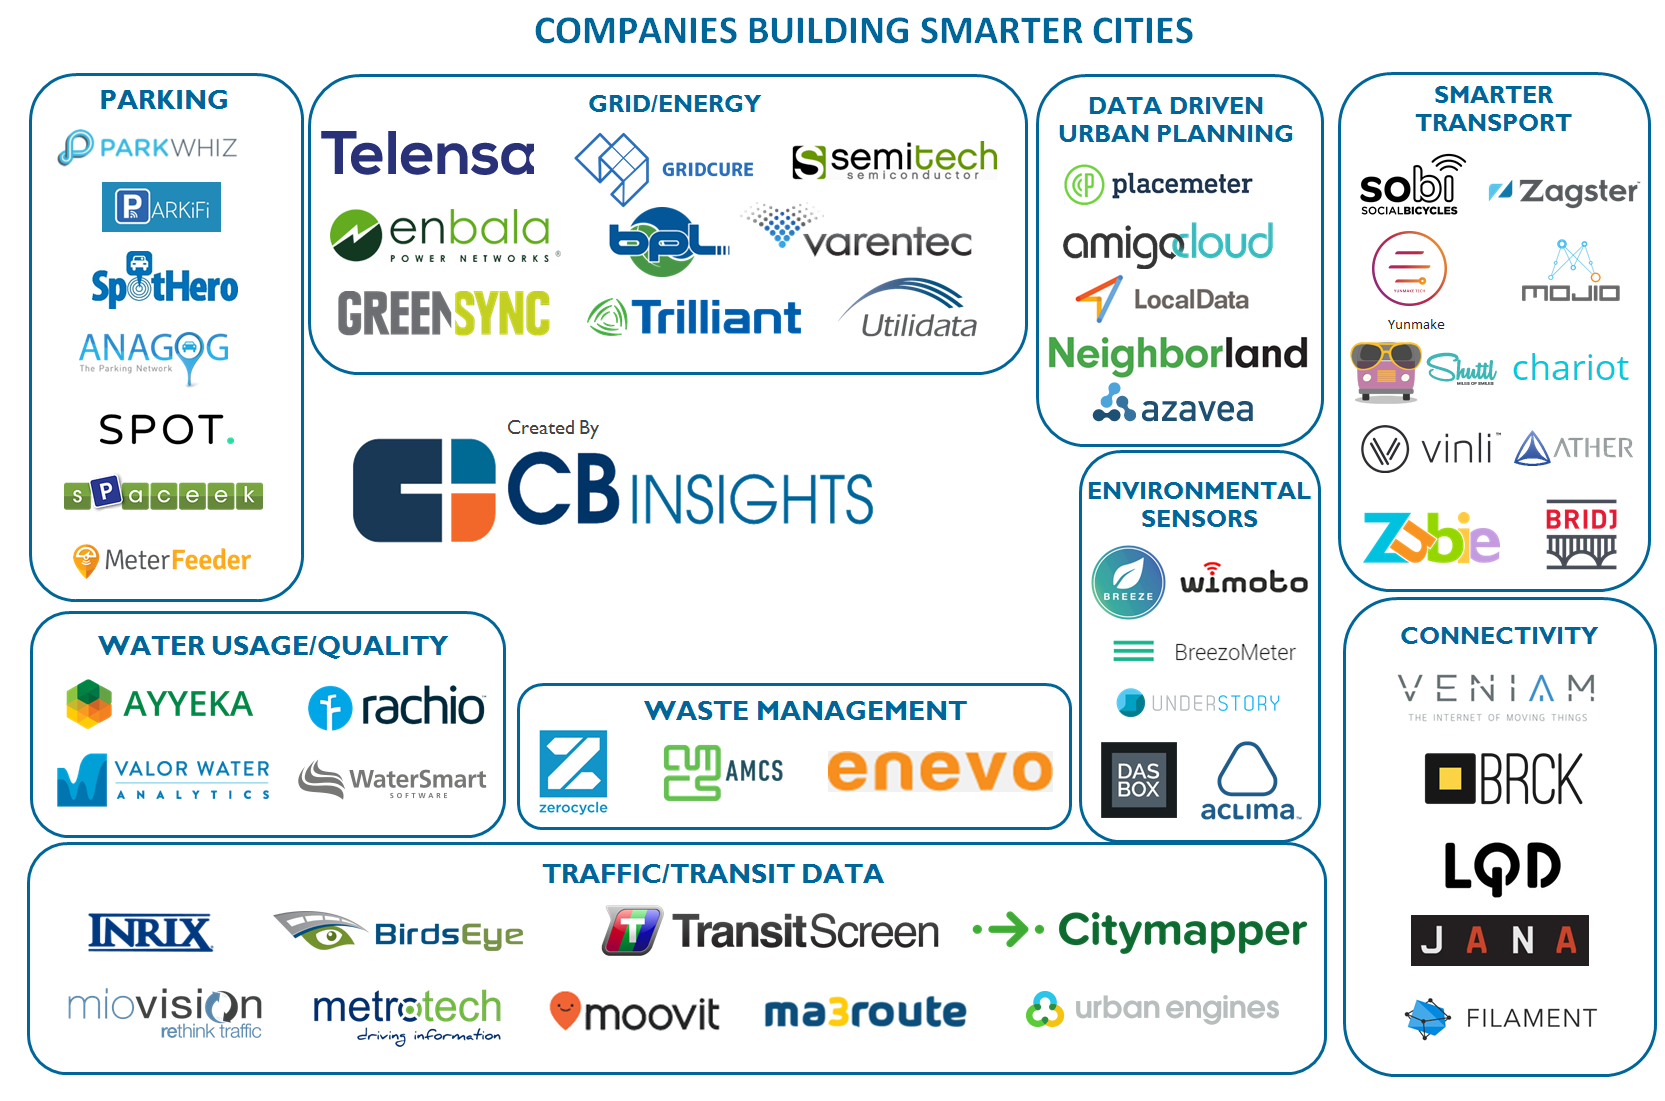 56 Startups Making Cities Smarter Across Traffic Waste